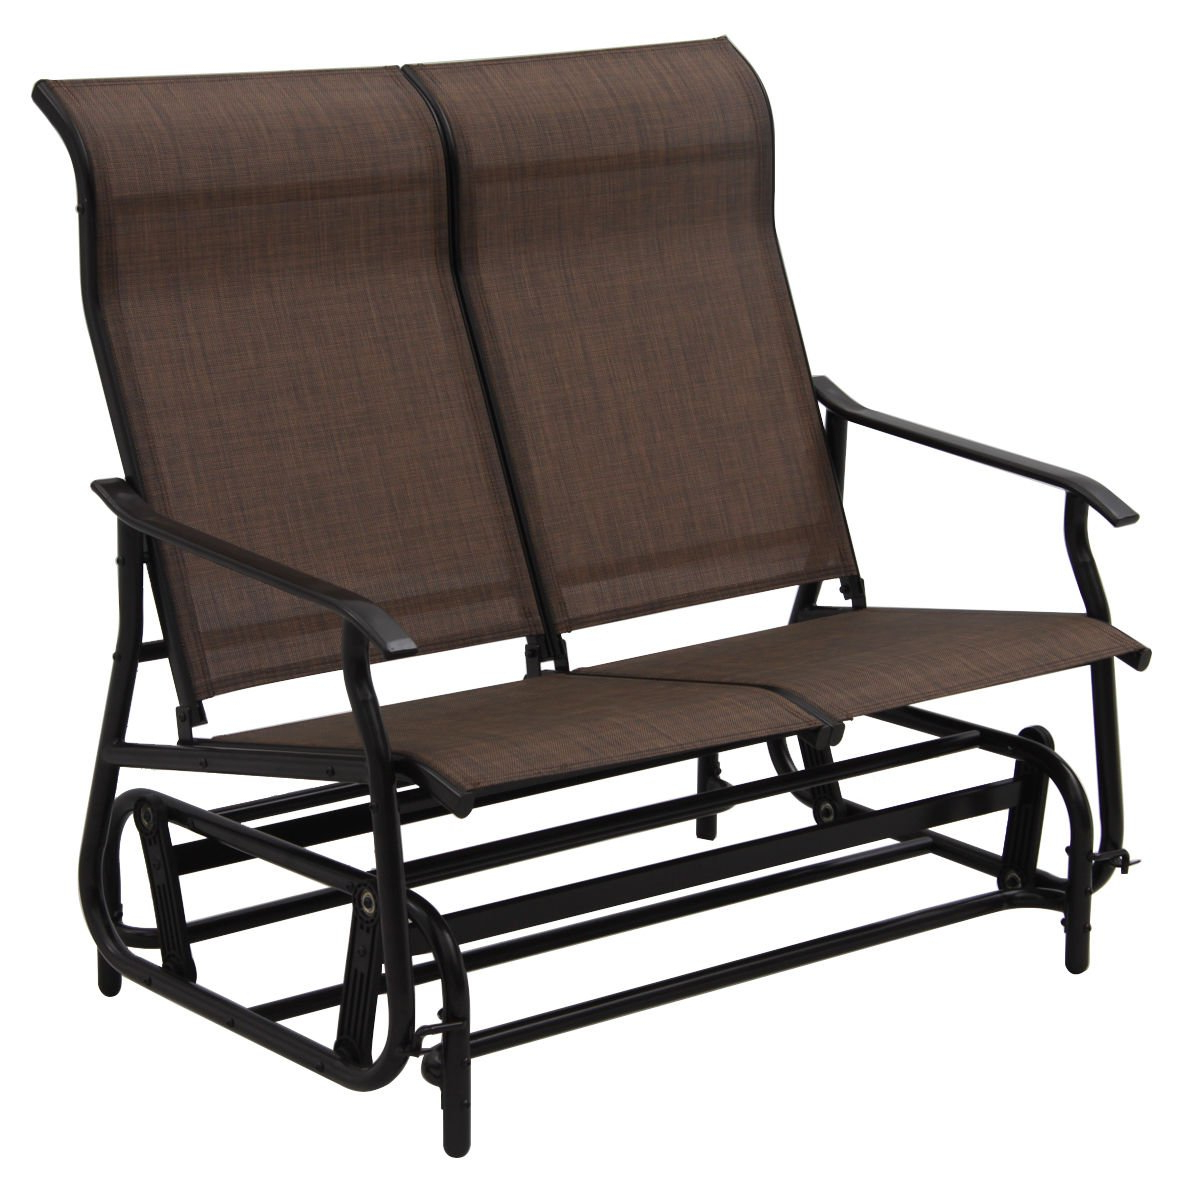 Best And Newest Sling Double Glider Benches Throughout Amazon : Lunanice 2 Person Patio Glider Rocking Bench (Gallery 22 of 30)